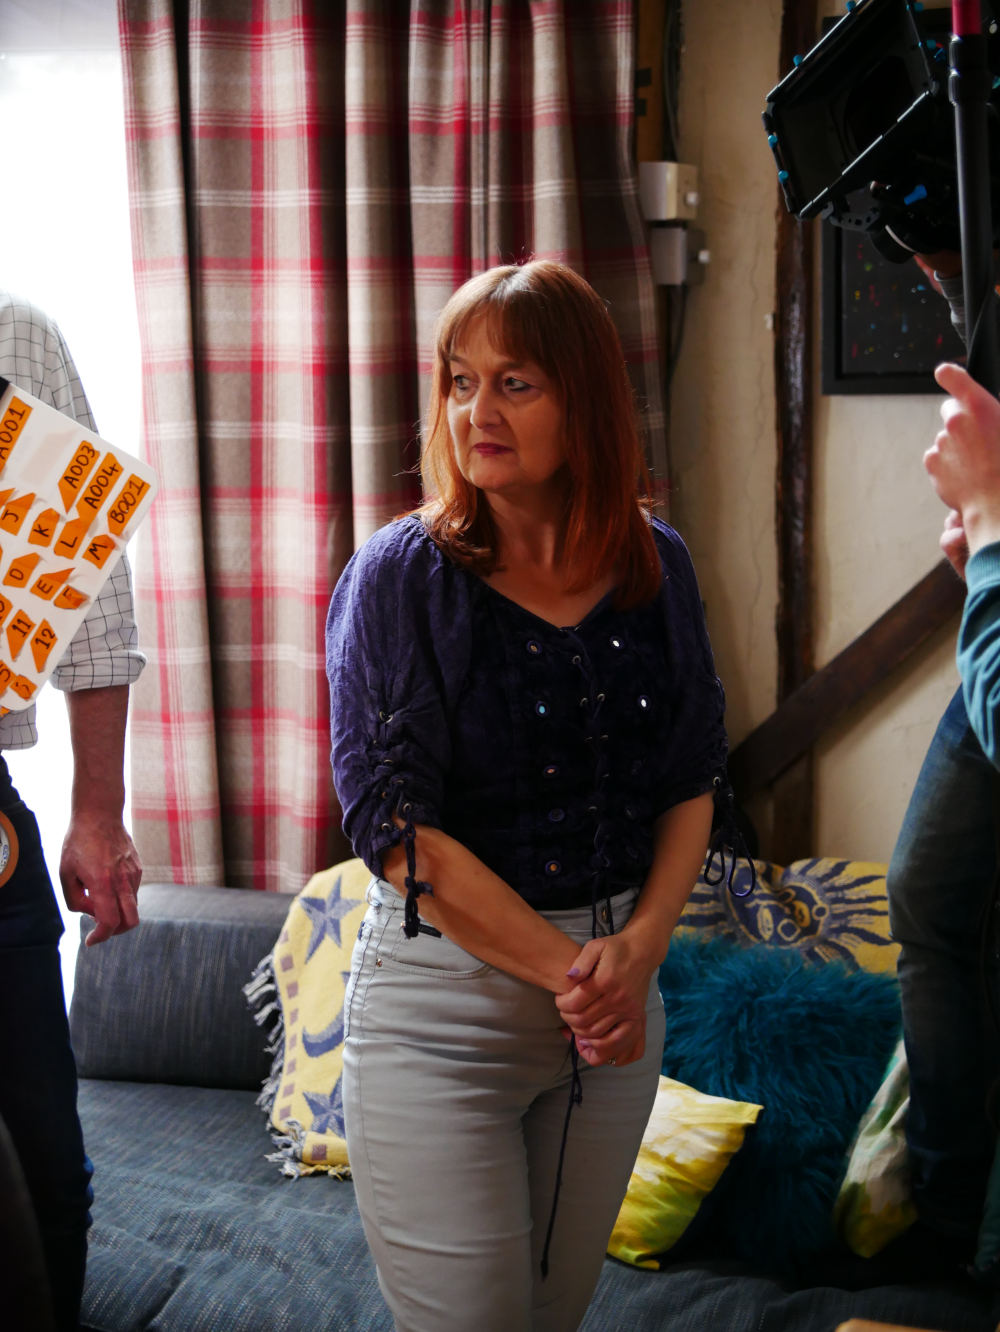 Behind the scenes photo from comedy short film Keep It in the Family of actress Sarah-Ann Hassall